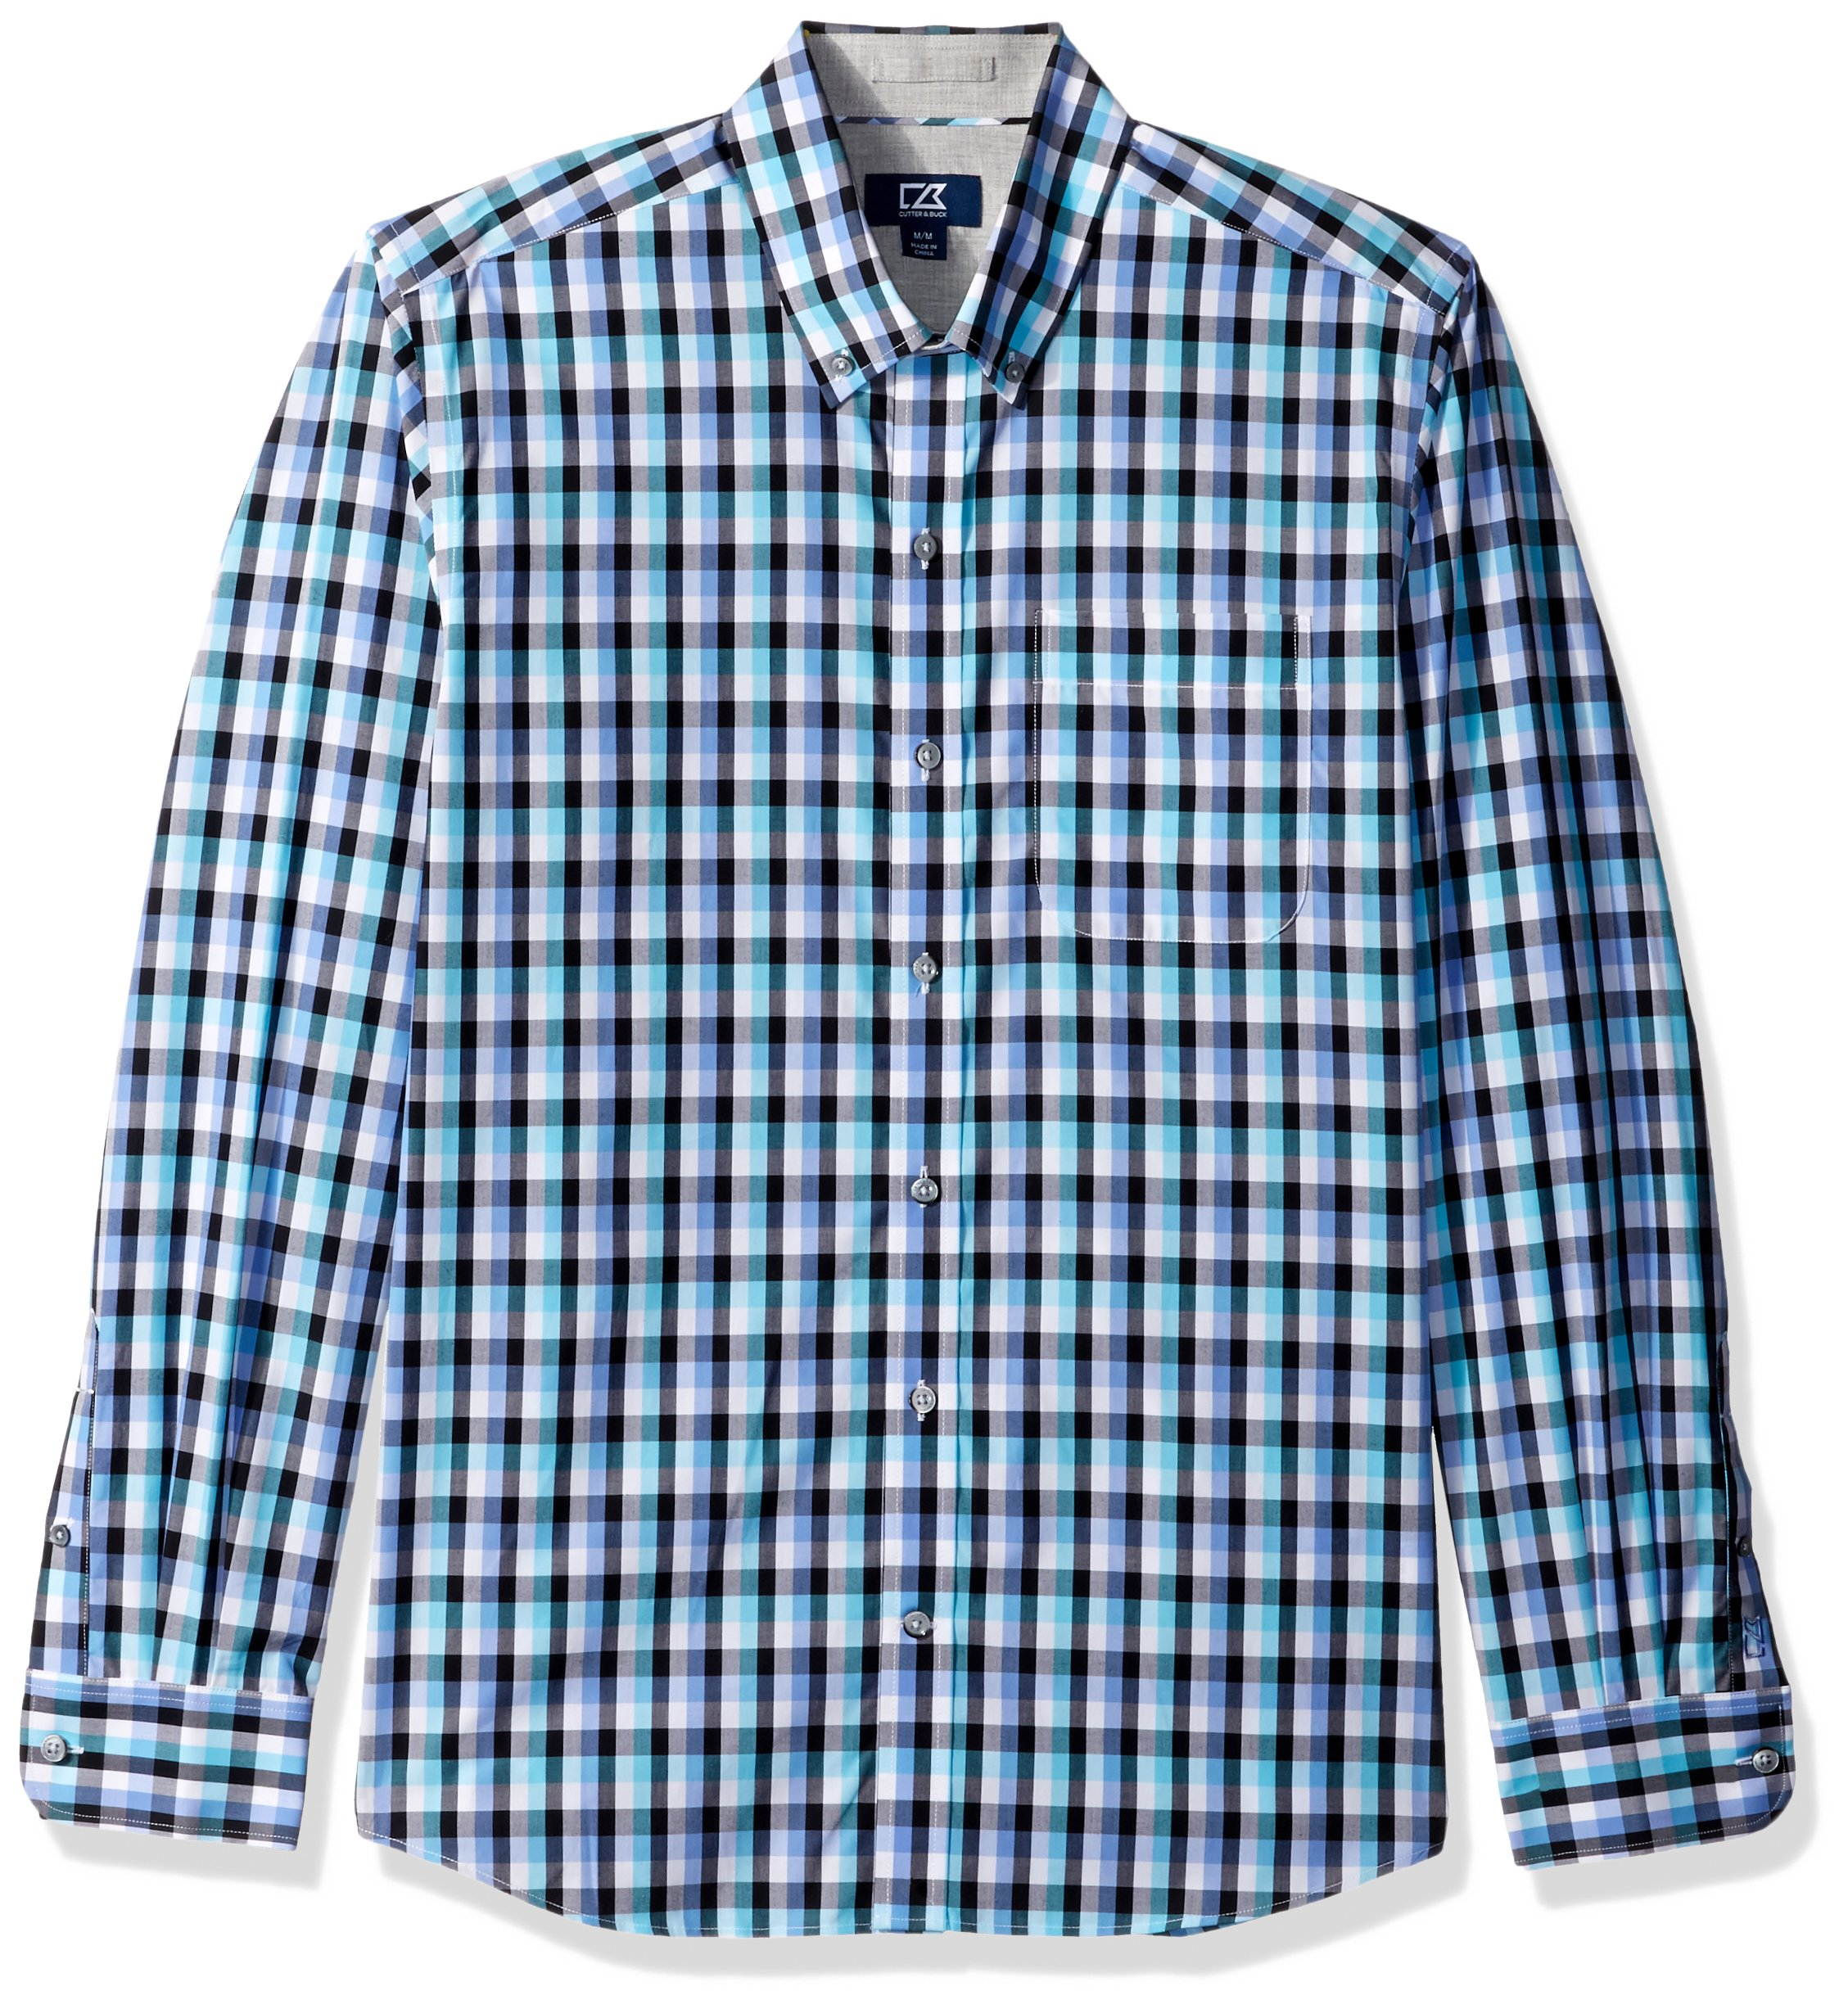 Cutter & Buck Men's Big and Tall Large Plaid and Check Easy Care Button Down Collared Shirts, Wisteria Purple Sawyer, XLT